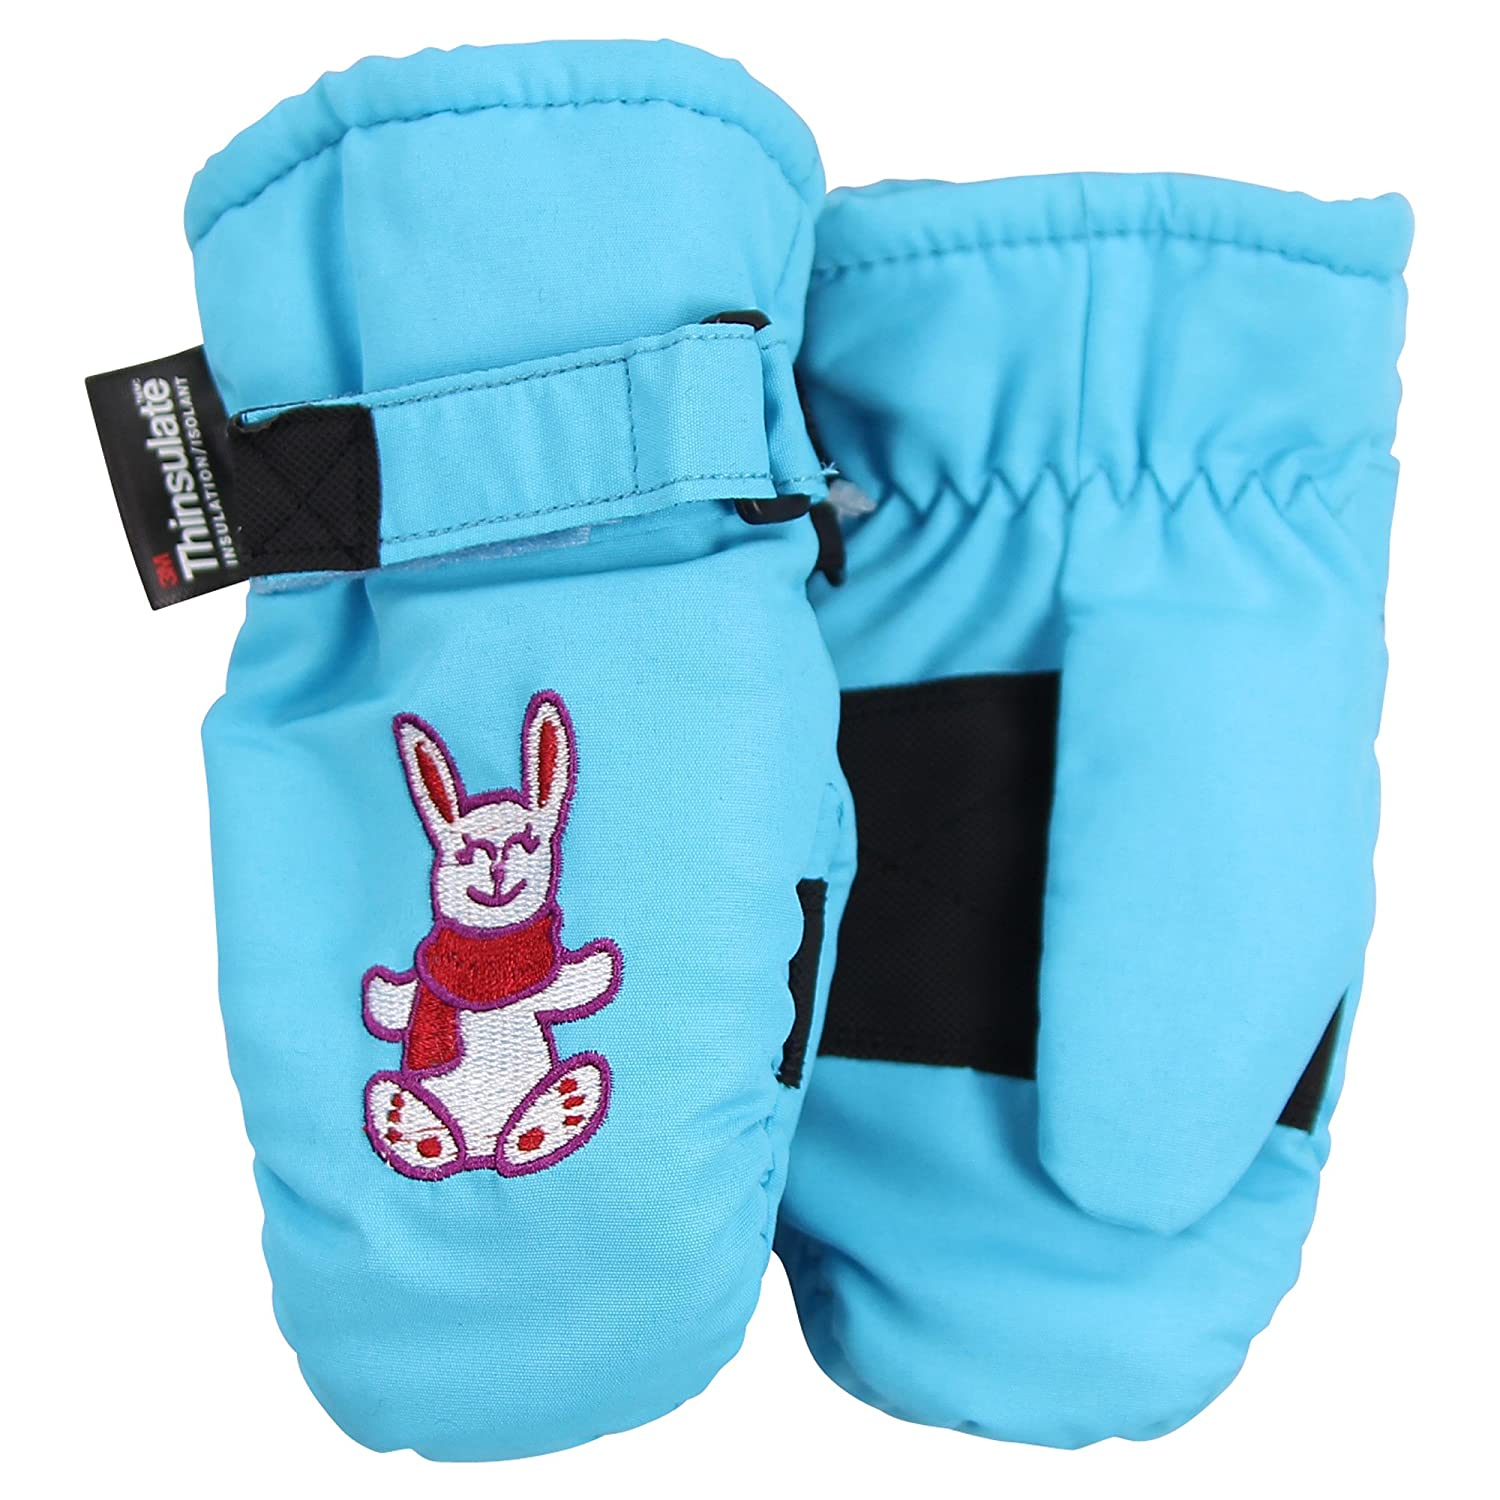 Toddler Girl's Waterproof / Thinsulate Lined Winter Mittens (Ages 2-4)